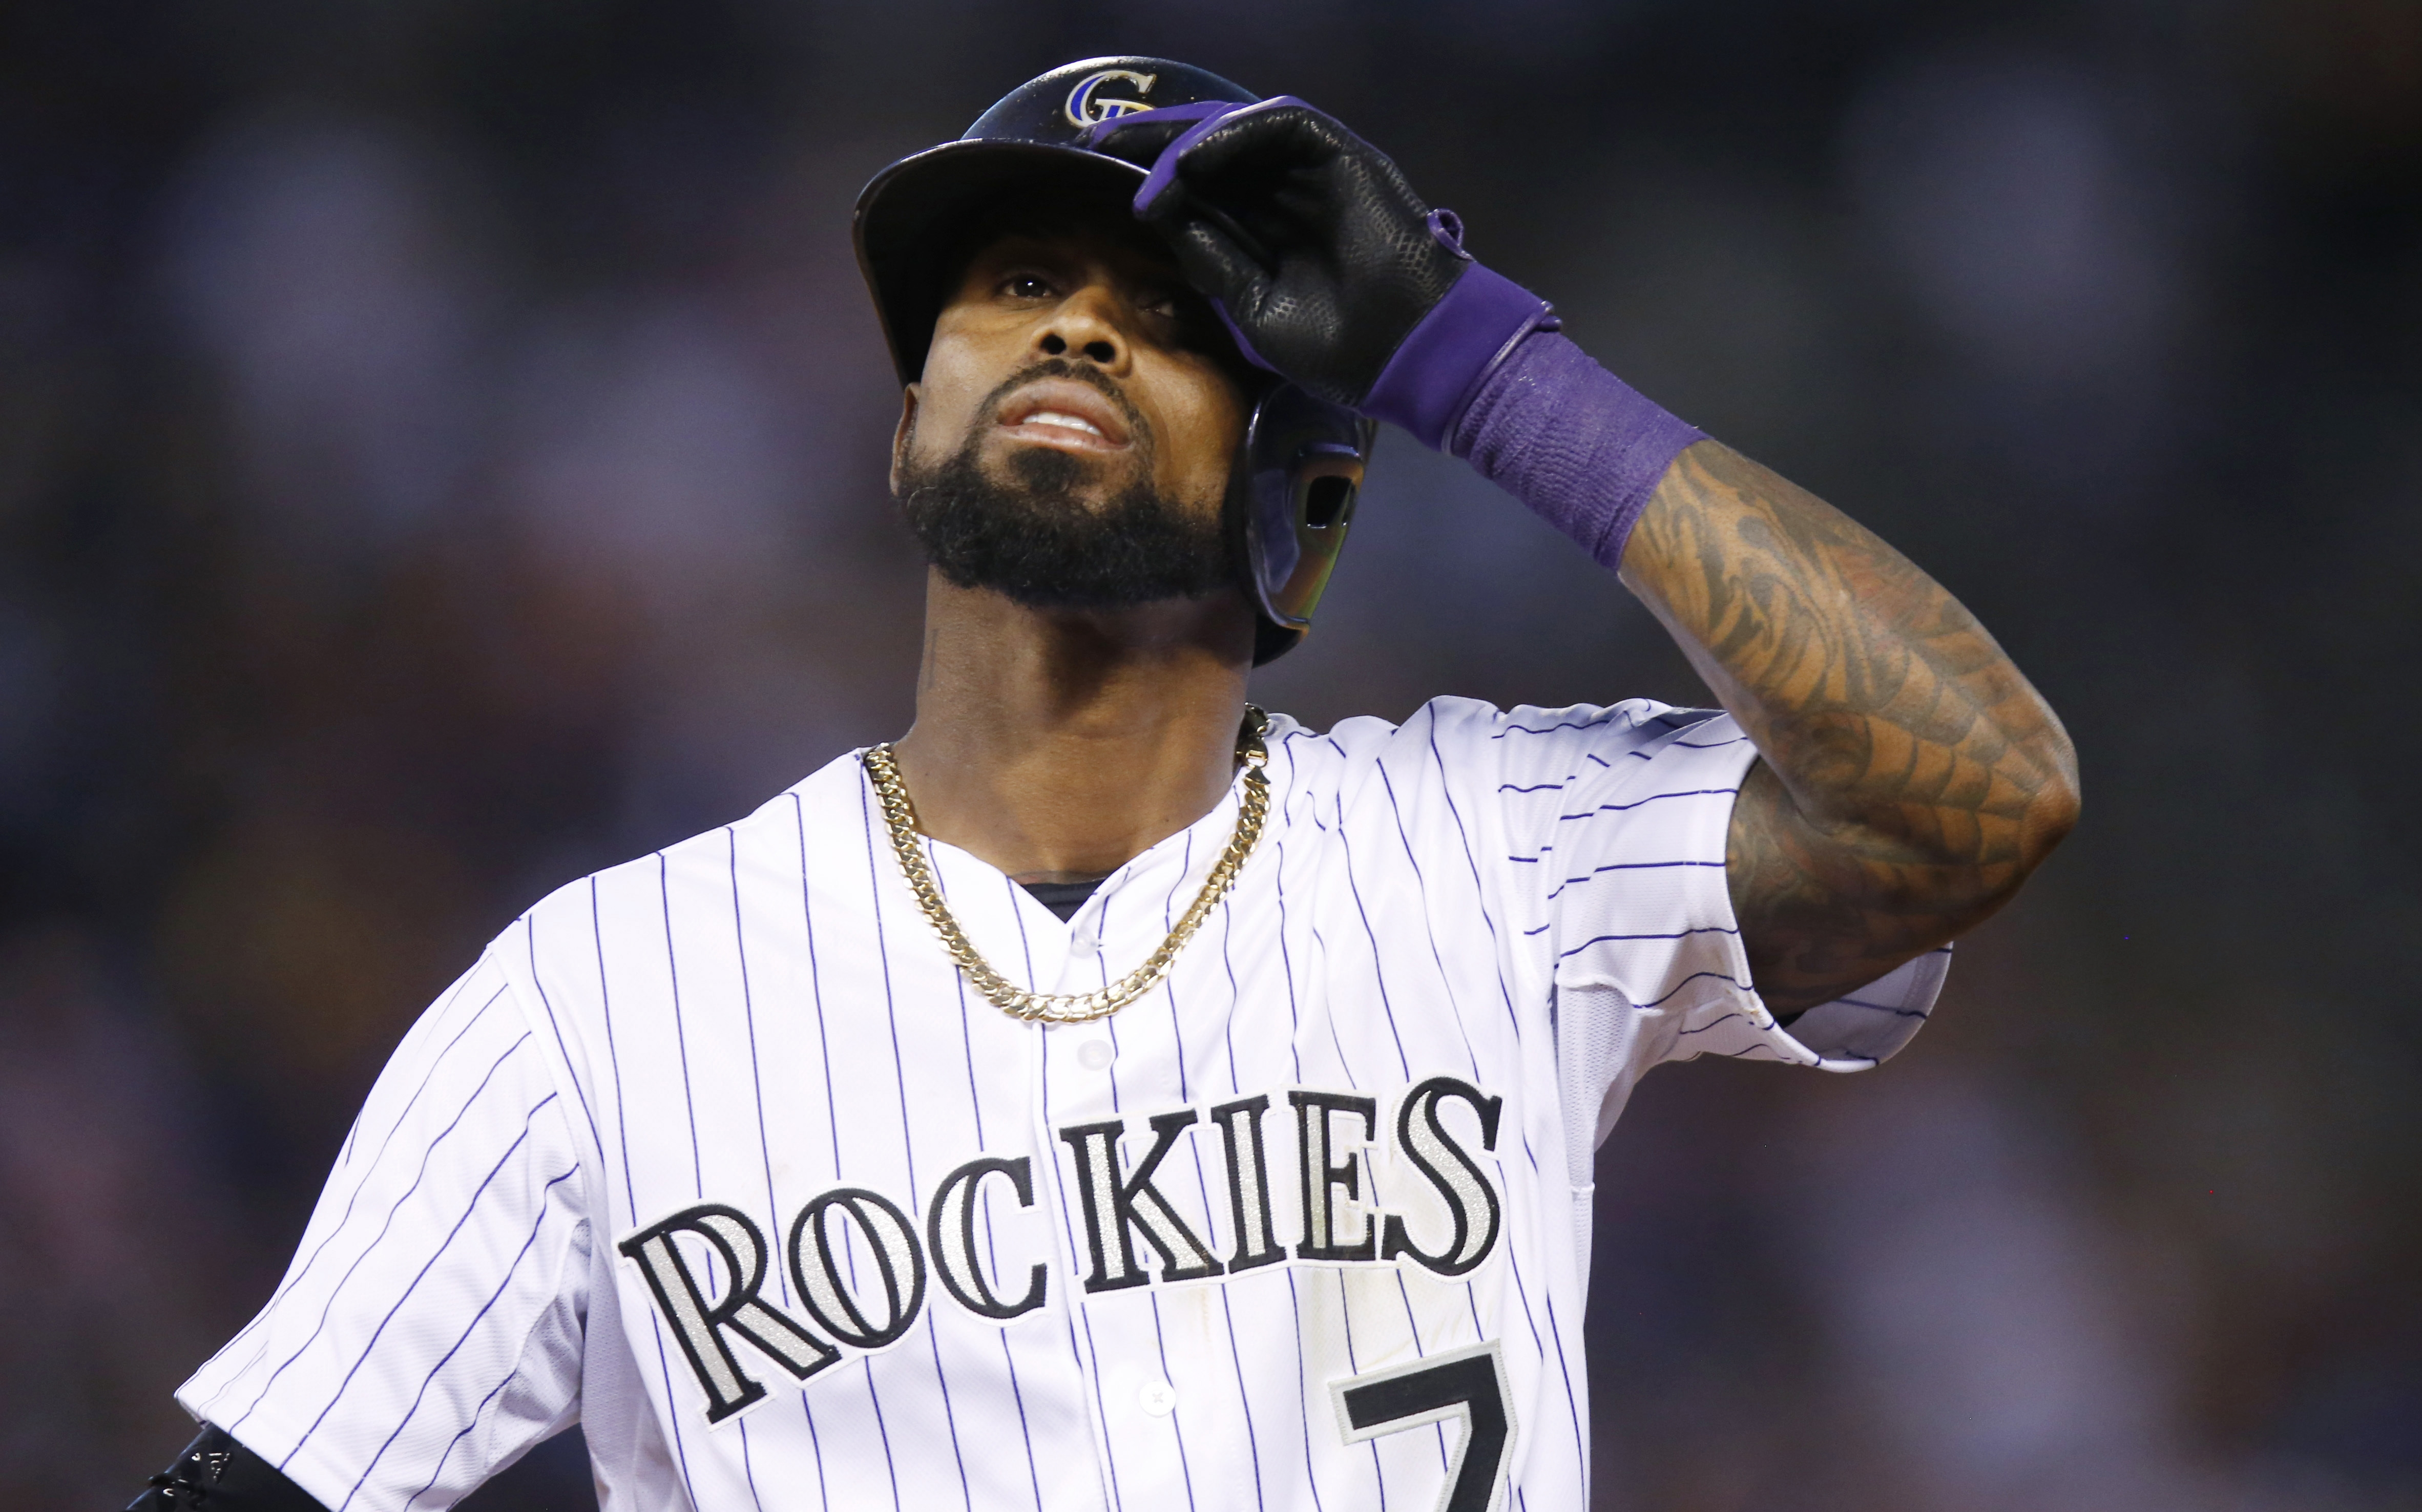 FILE - In this Aug. 4, 2015, file photo, Colorado Rockies shortstop Jose Reyes is shown adjusting his helmet while facing the Seattle Mariners in an interleague baseball game. Rather than activate  Reyes following his domestic violence suspension, the  Ro